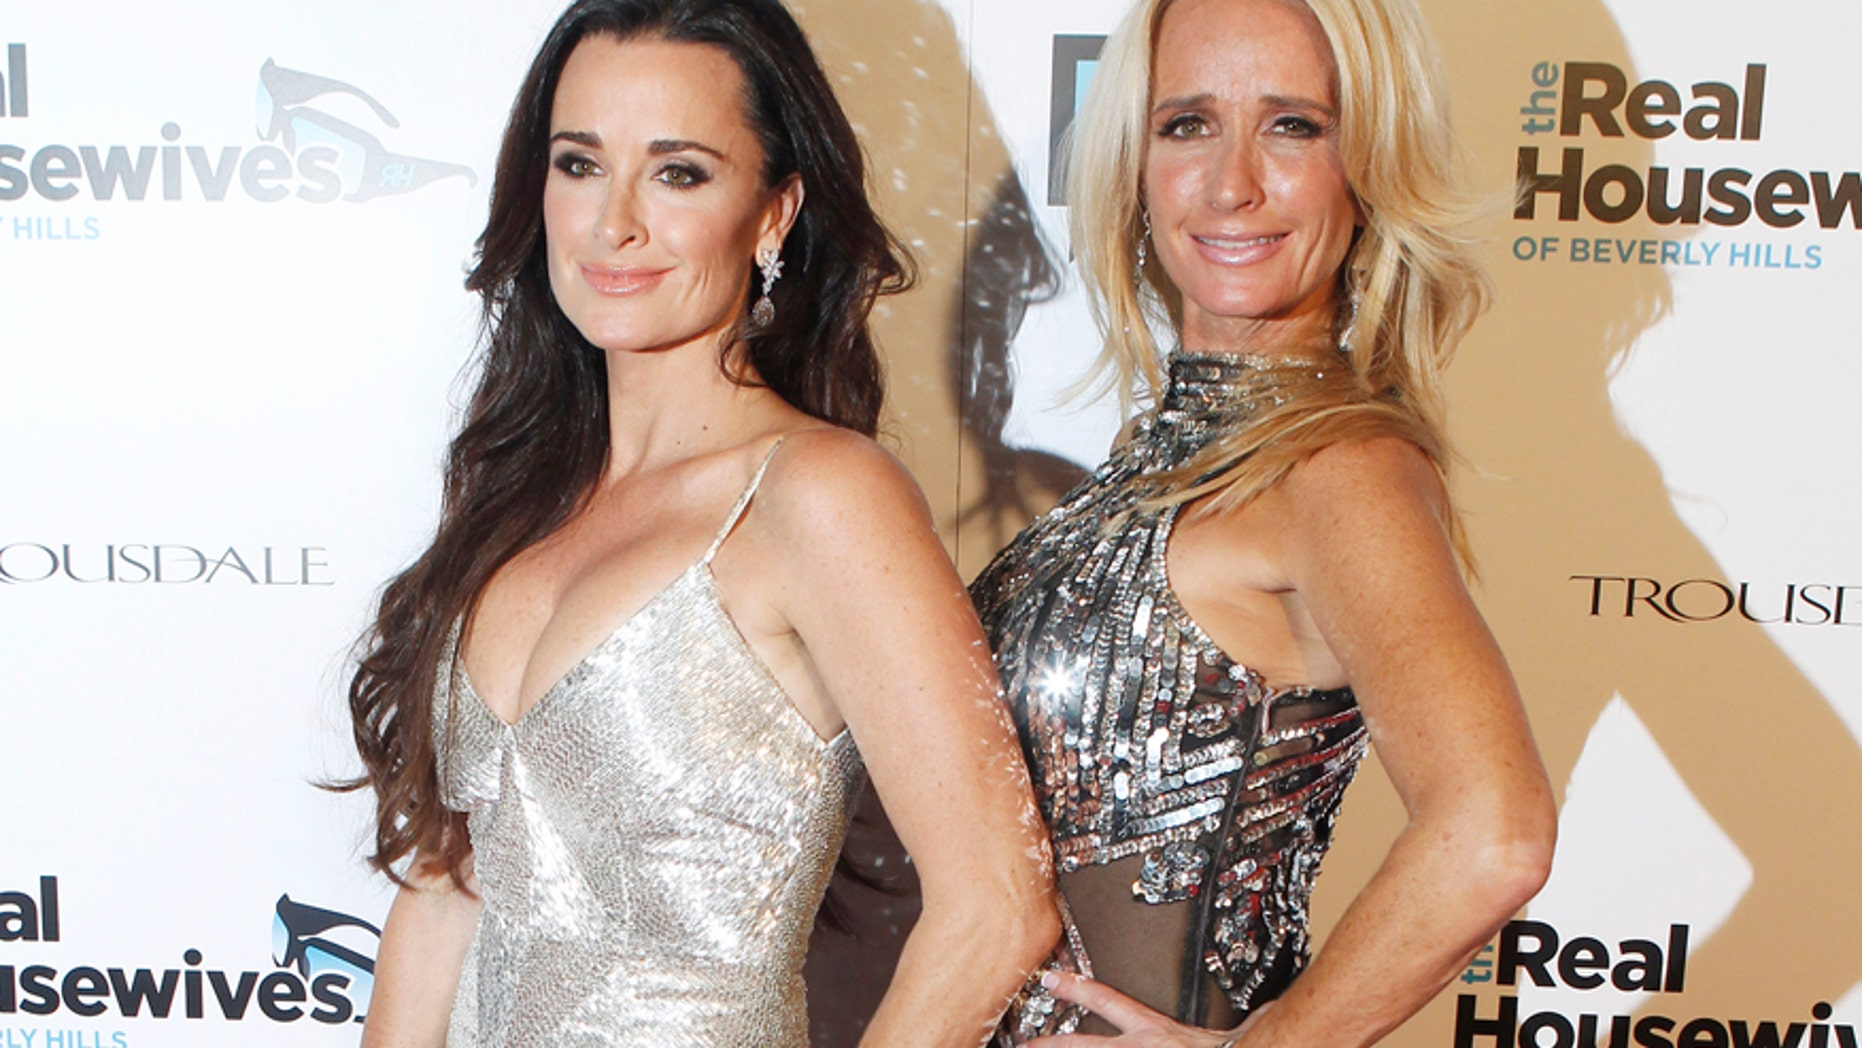 """Sisters and cast members of Bravo's new reality series """"The Real Housewives of Beverly Hills"""" Kyle Richards (L) and Kim Richards pose at the premiere party in Los Angeles October 11, 2010."""